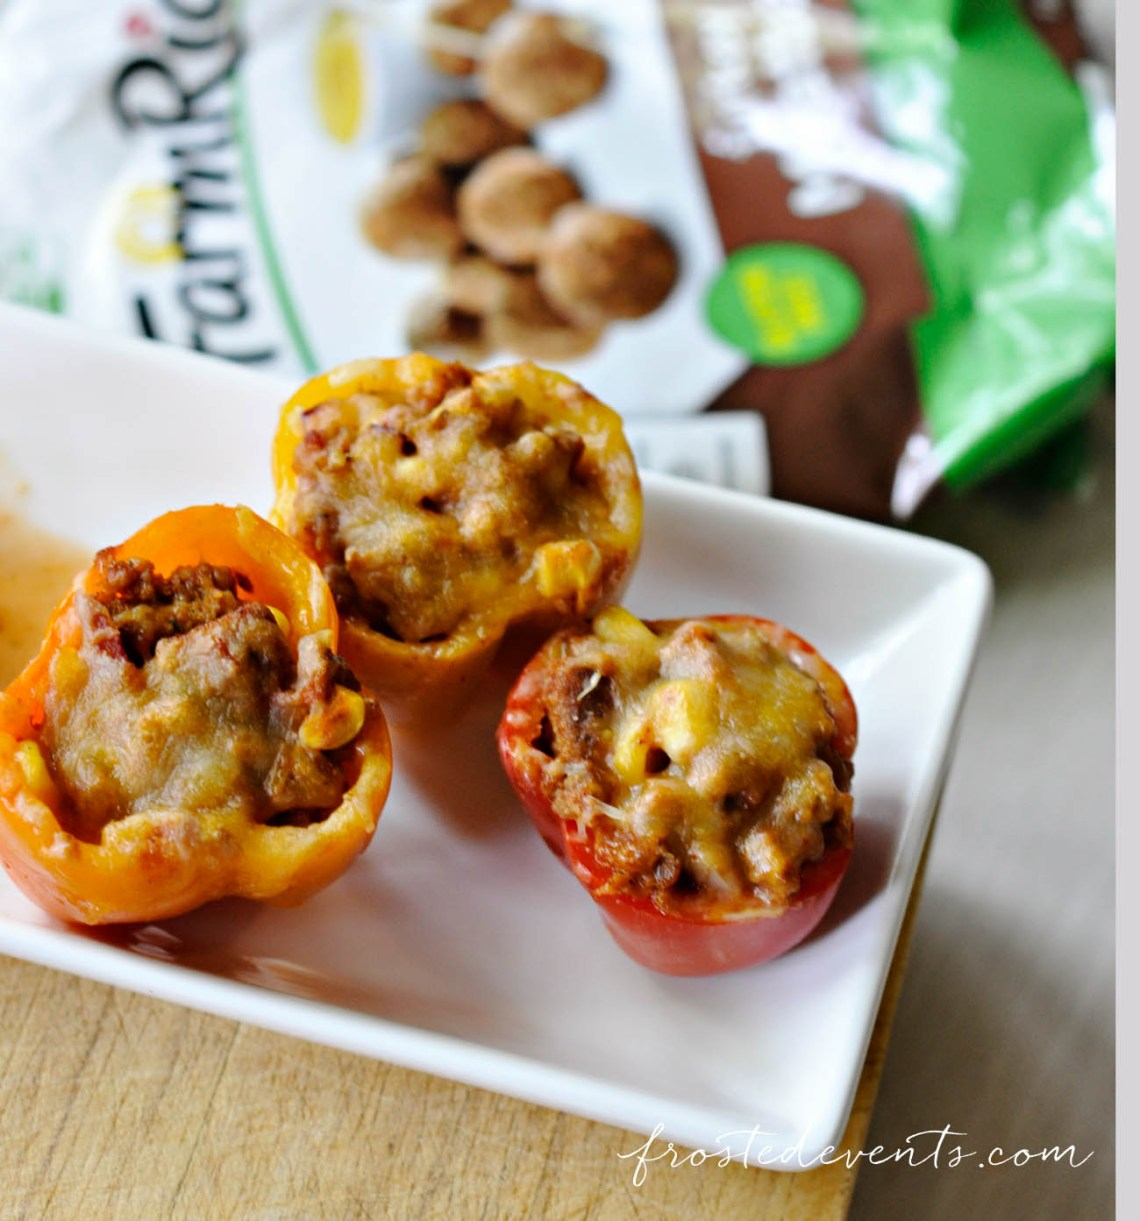 Party Recipes- Mini Southwestern Stuffed Peppers Recipe - Perfect Football Party Food, Appetizer or Farm Rich Snack Idea #recipe